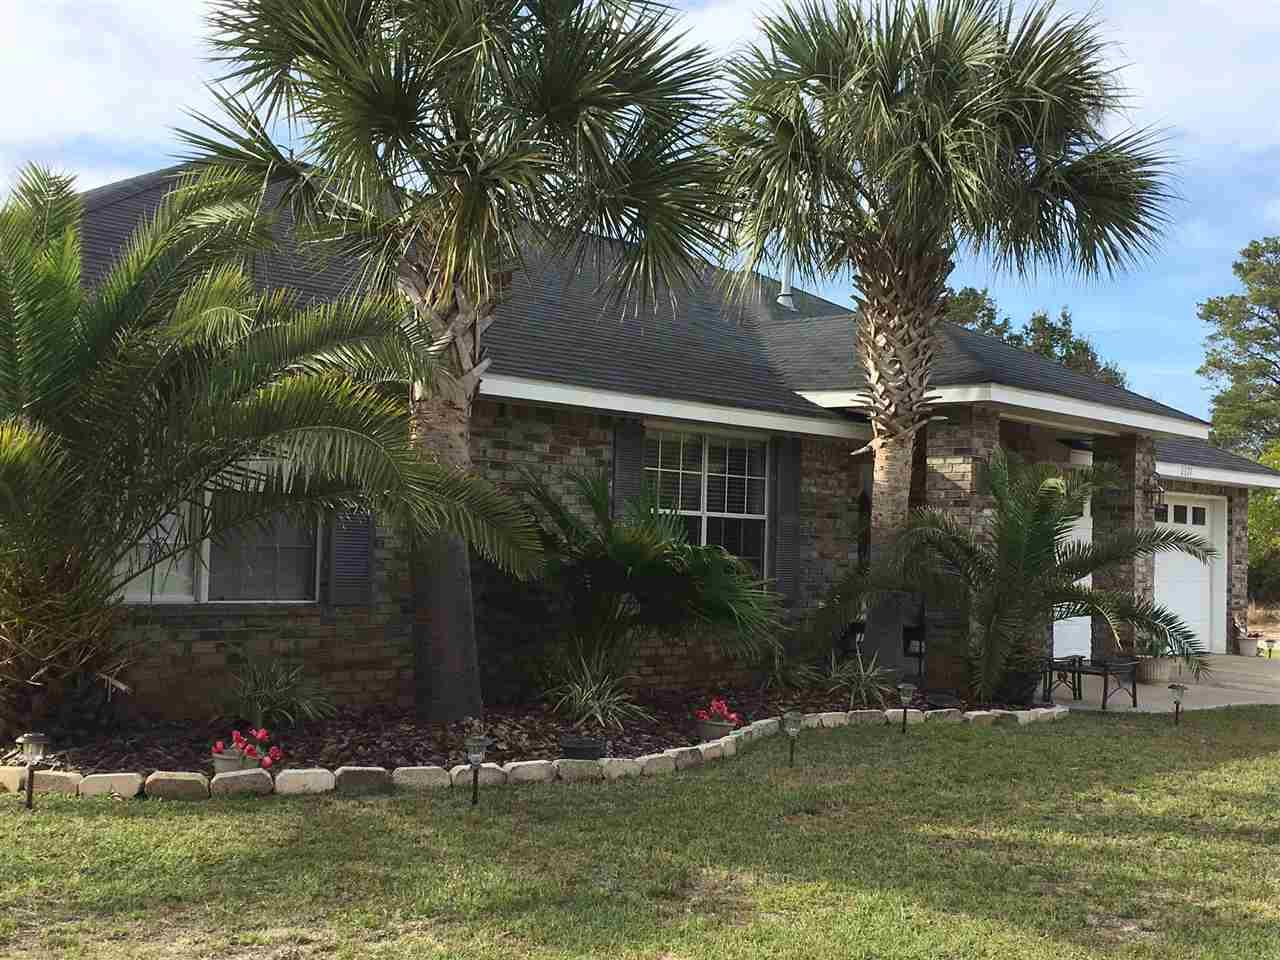 1377 HARVARD DR, GULF BREEZE, FL 32563